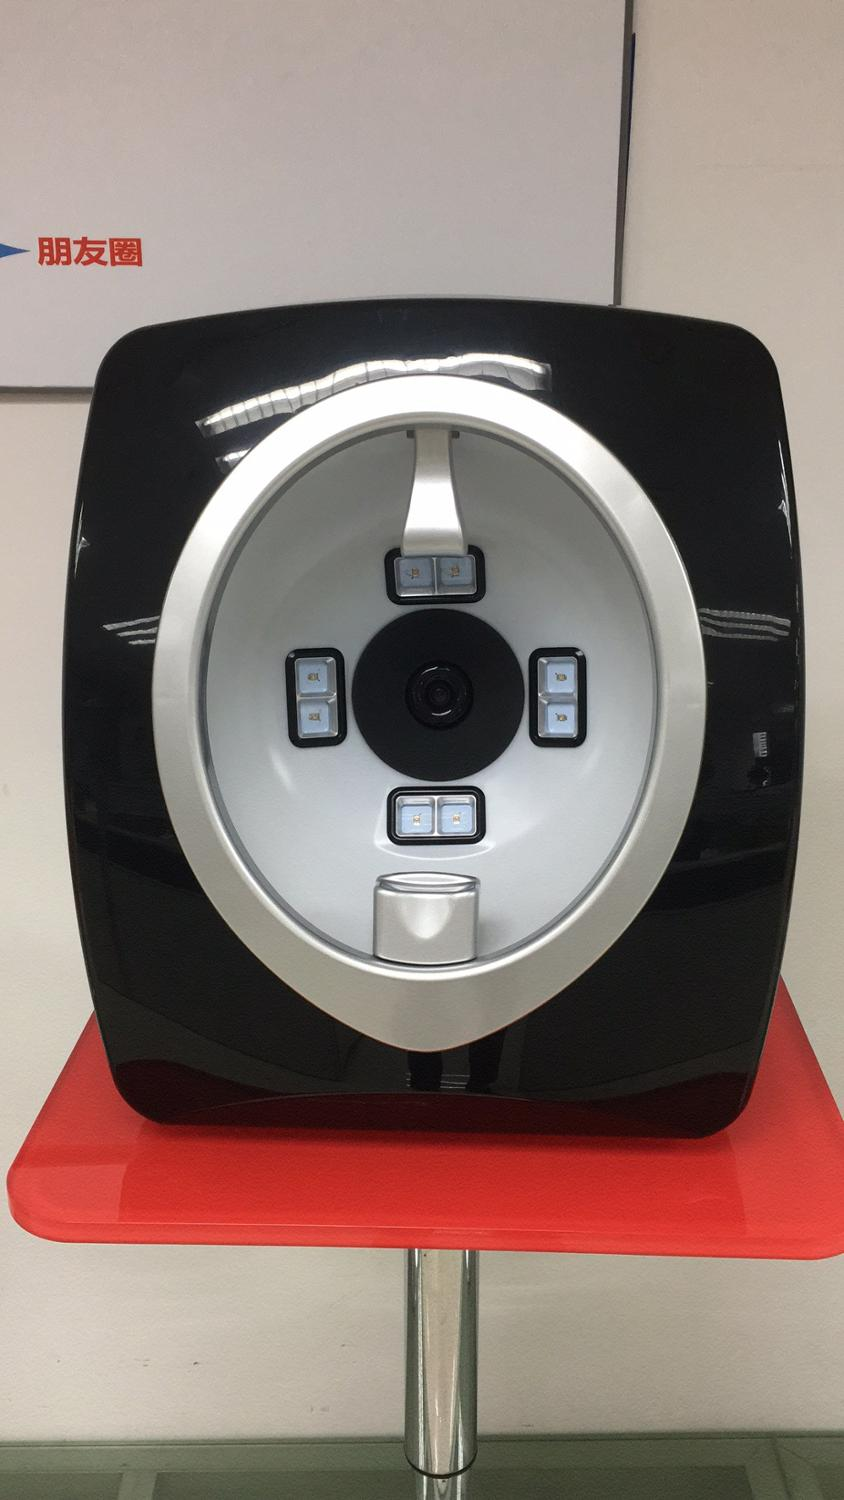 Hot Product New Promotion Link! ! ! Beauty Machine Facial Skin Analyzing Machine Skin Analyser 3D Professional Skin Scanner